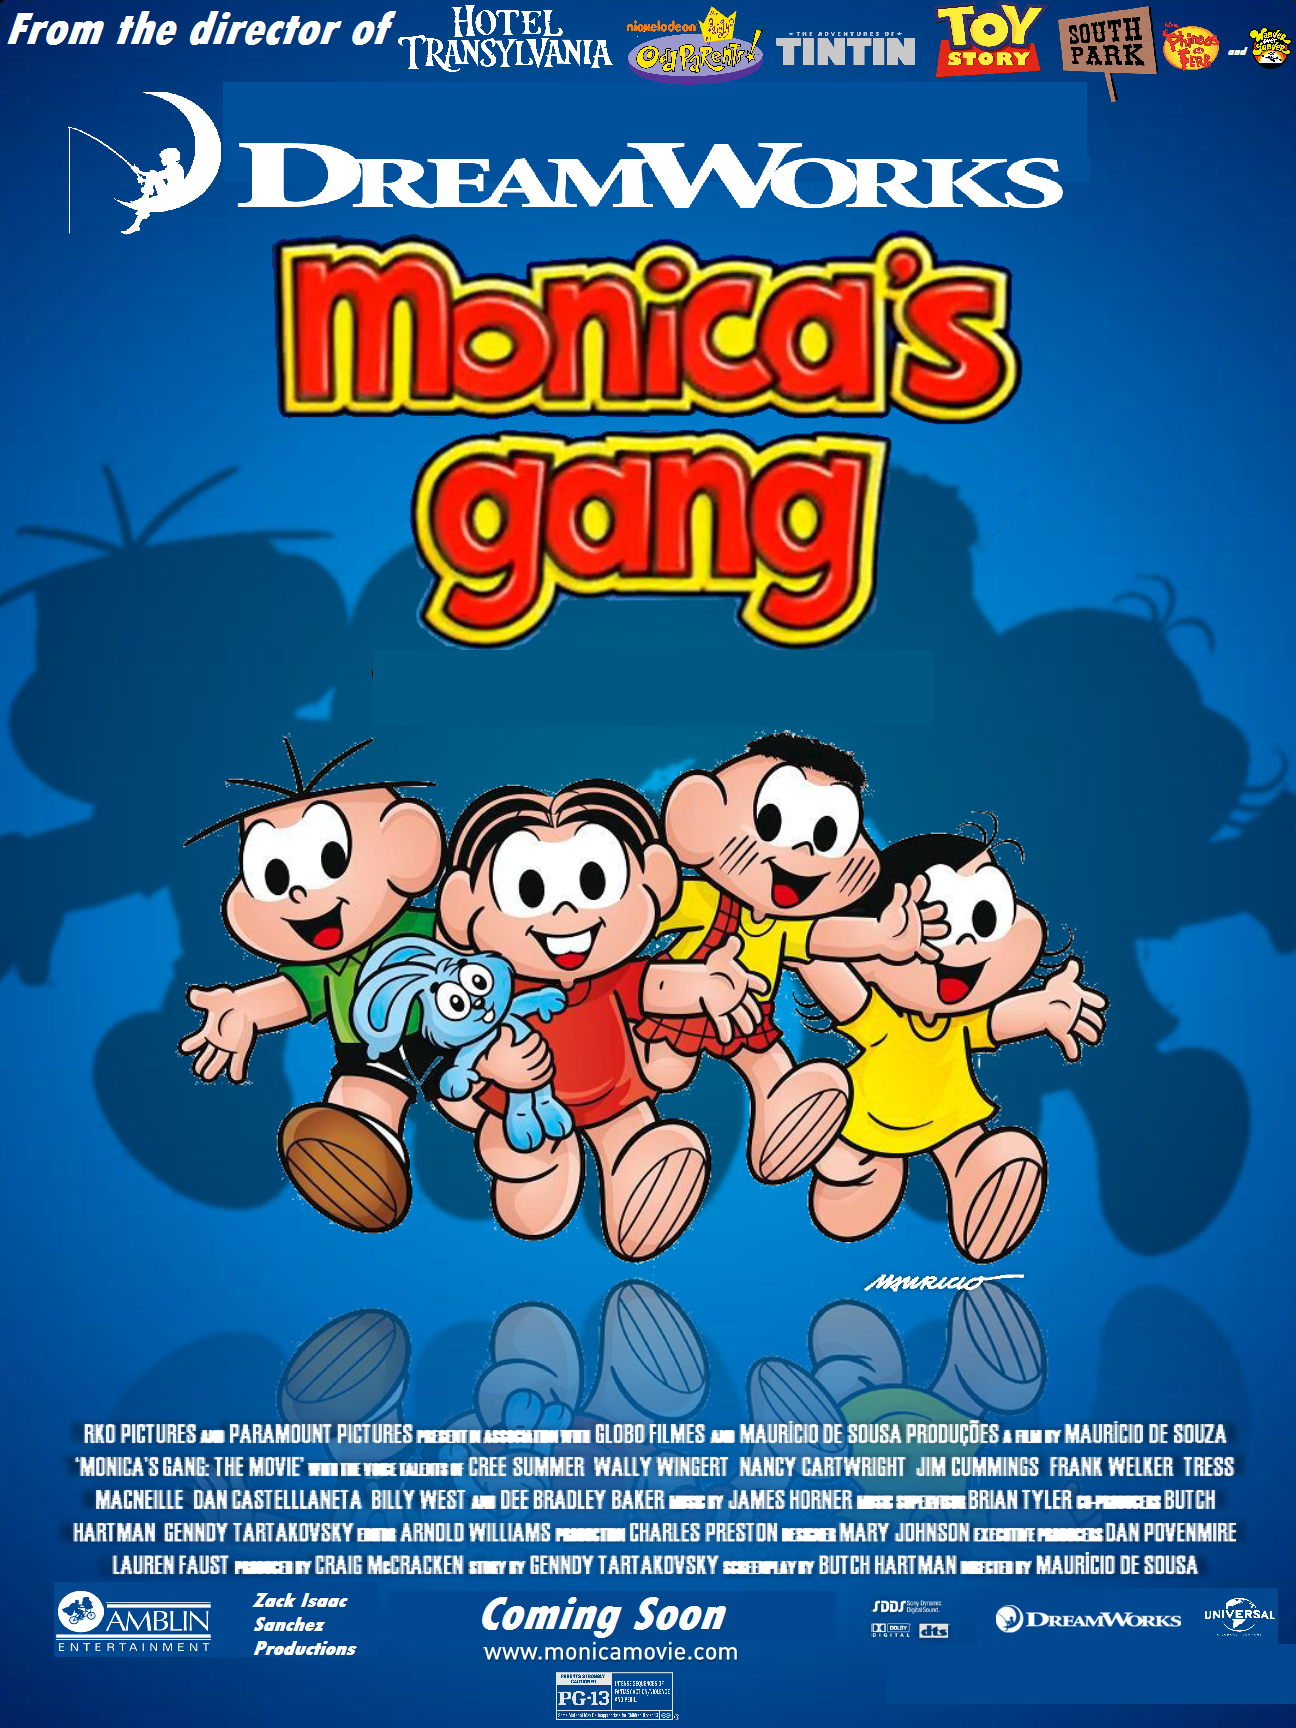 DreamWorks Monica's Gang